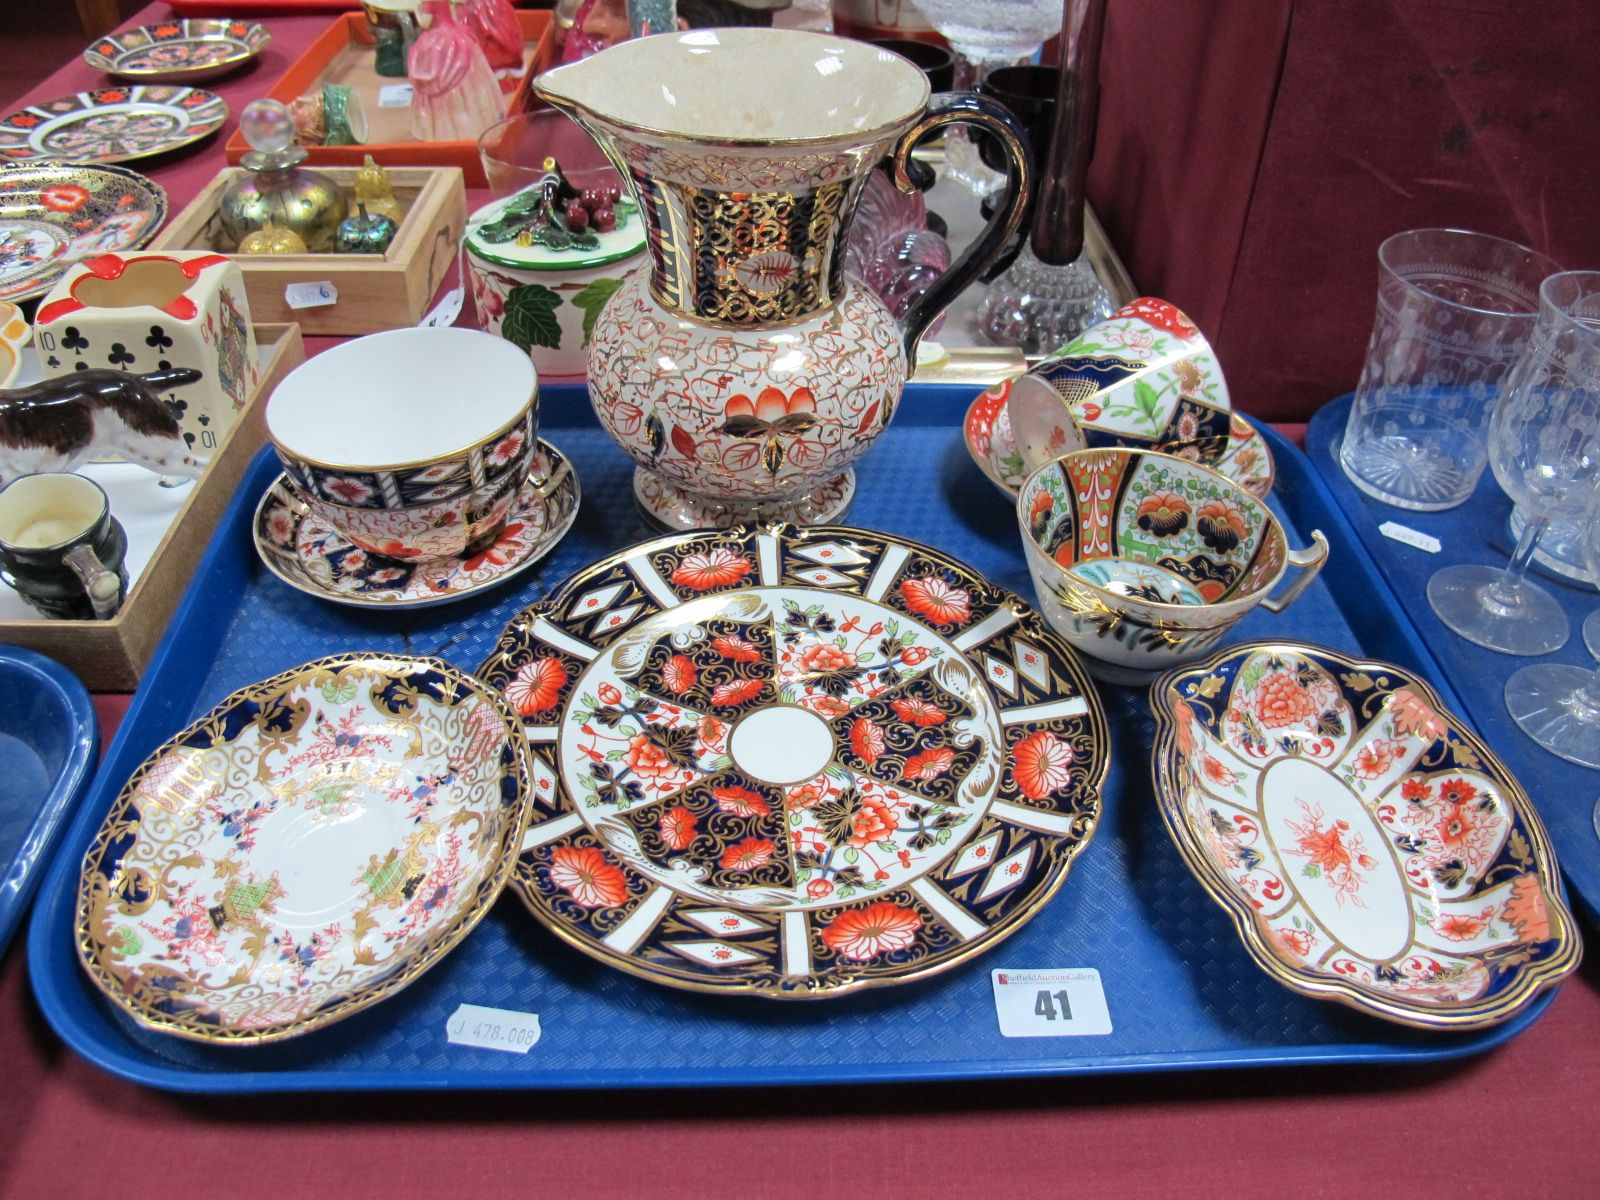 """Lot 41 - Royal Crown Derby Wavy Rim Plates, 20.5cm diameter, serpentine dish, """"1813"""" cup and saucer, teabowl,"""